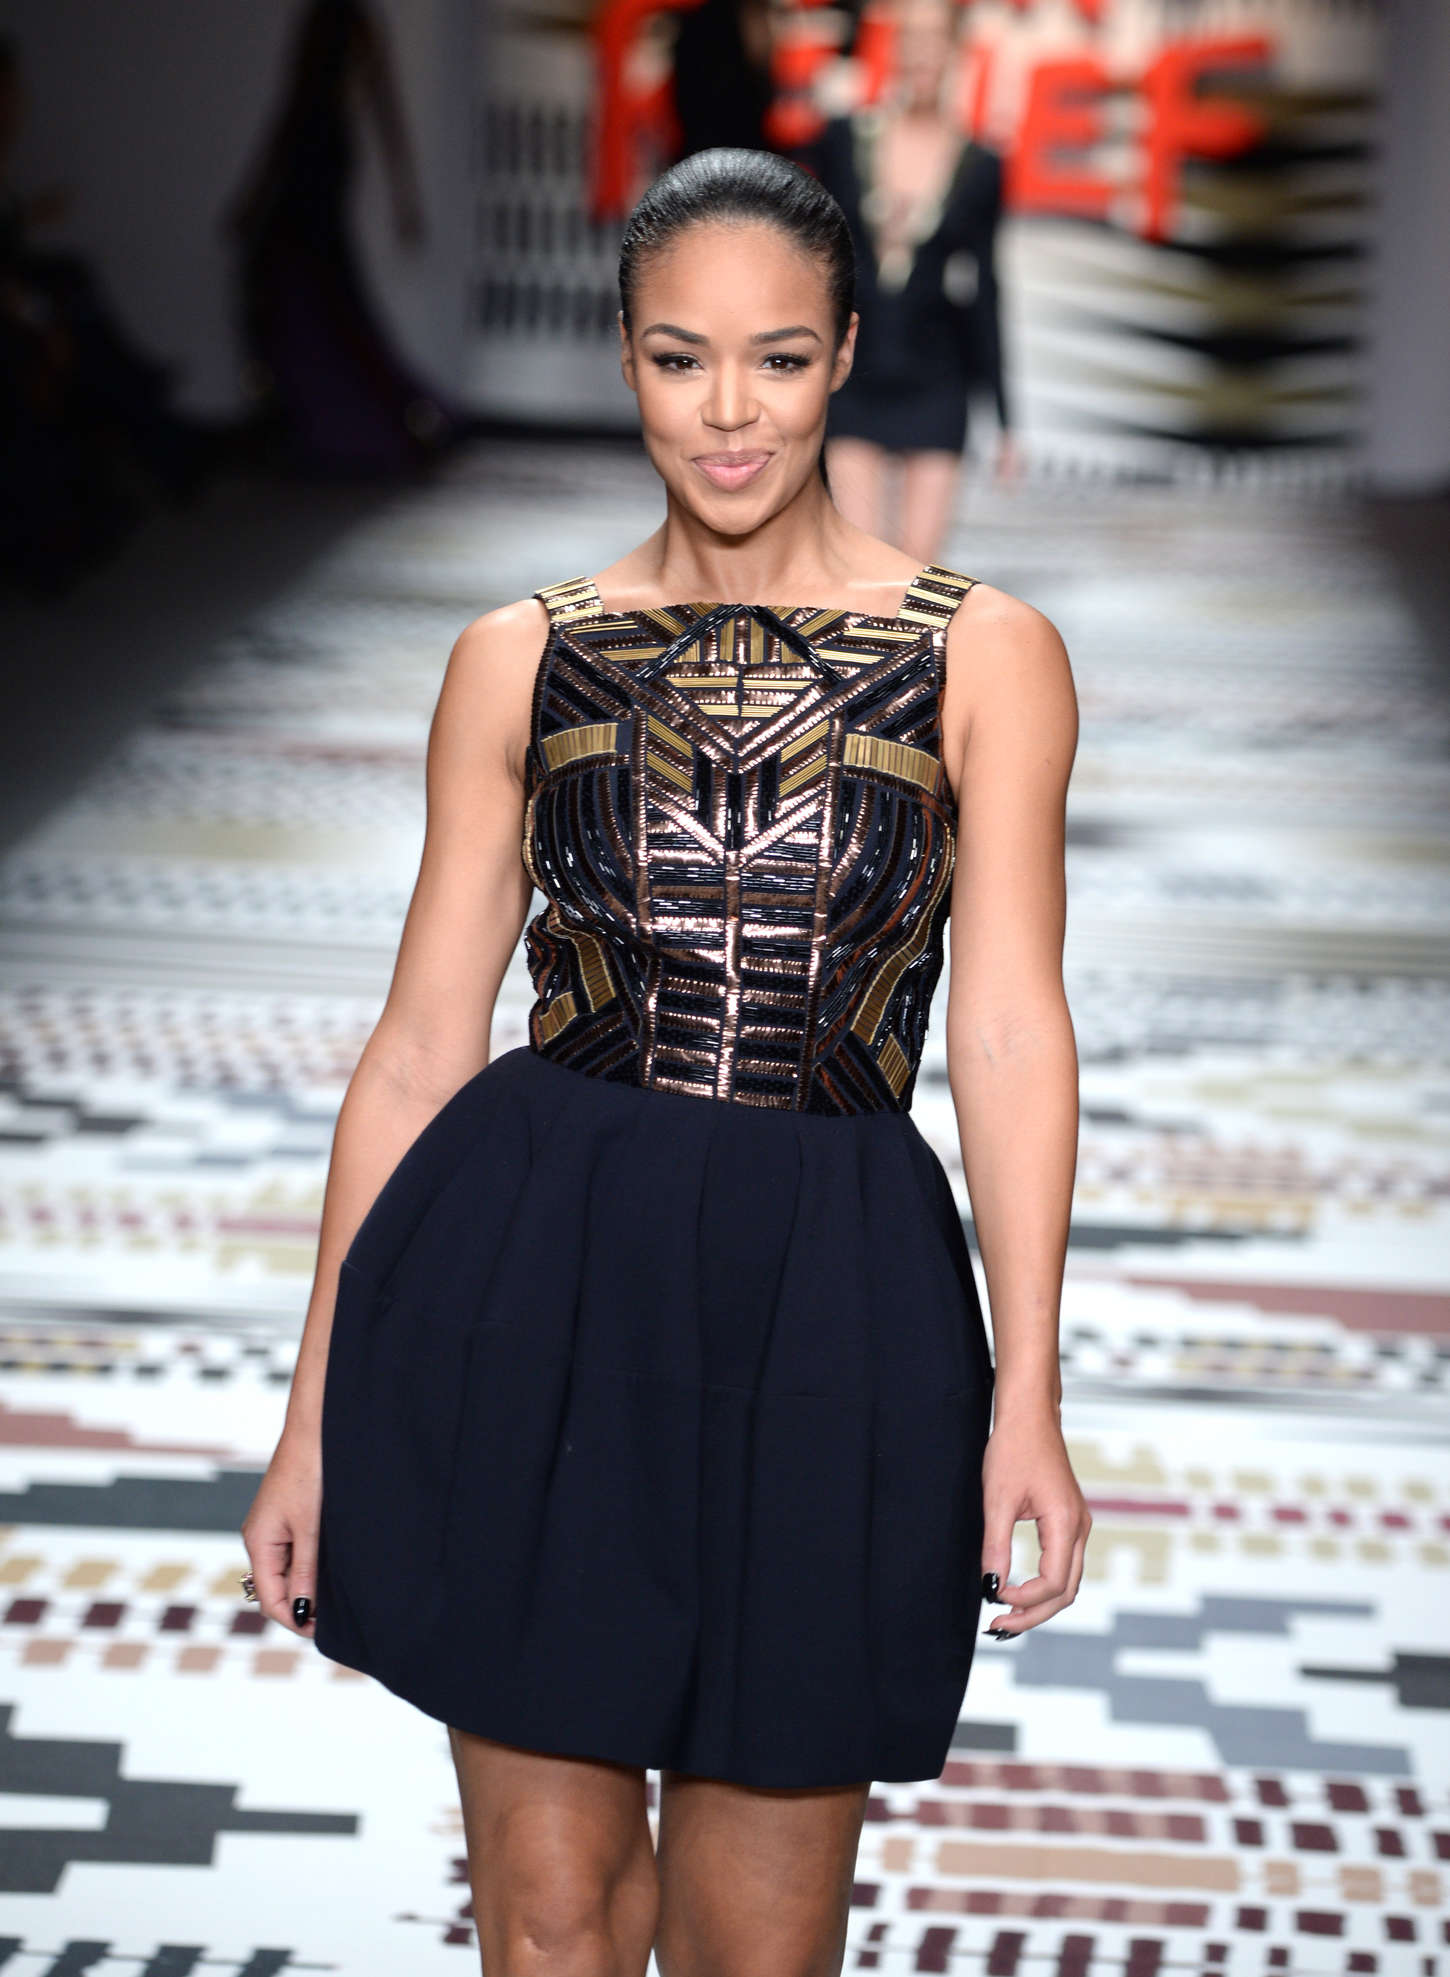 sarah-jane crawford - fashion for relief charity fashion show 2015